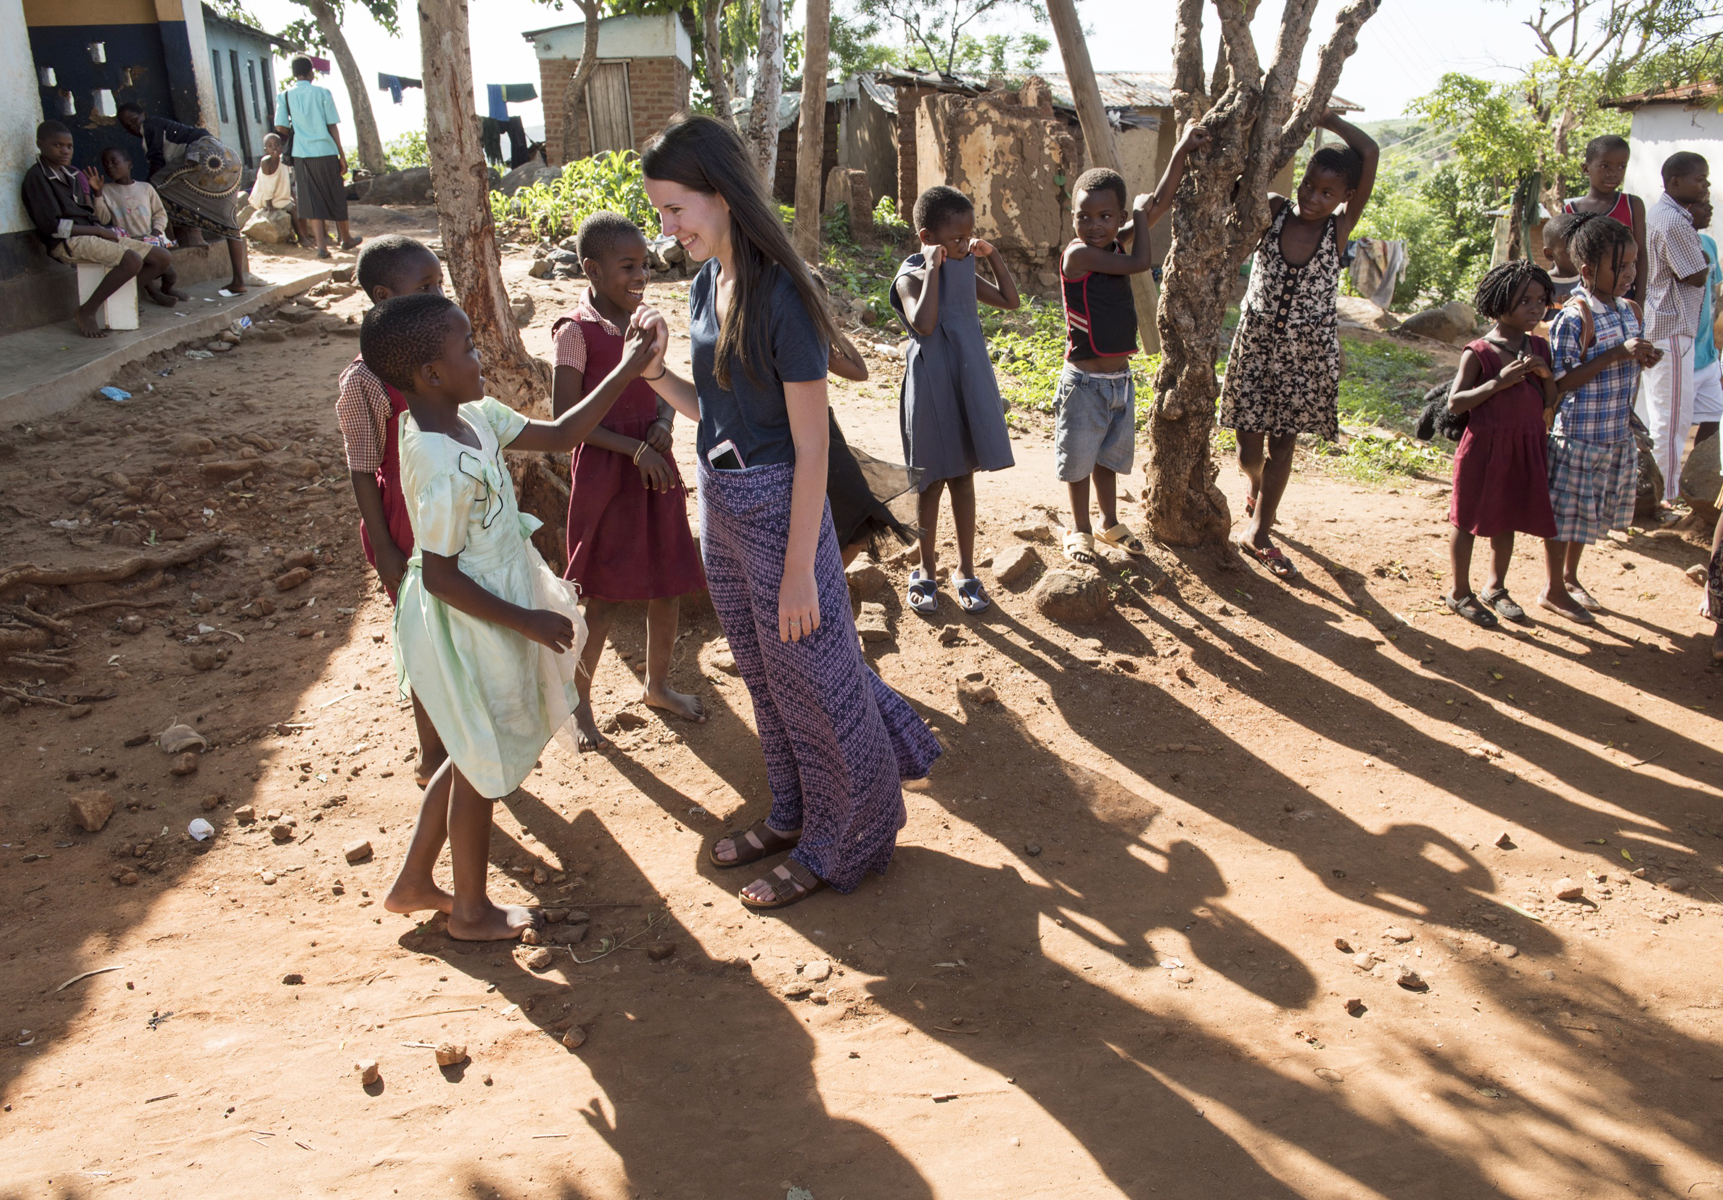 To familiarize themselves with their temporary home, Elon students visit a community on the outskirts of Blantyre, Malawi, where they were living and teaching.